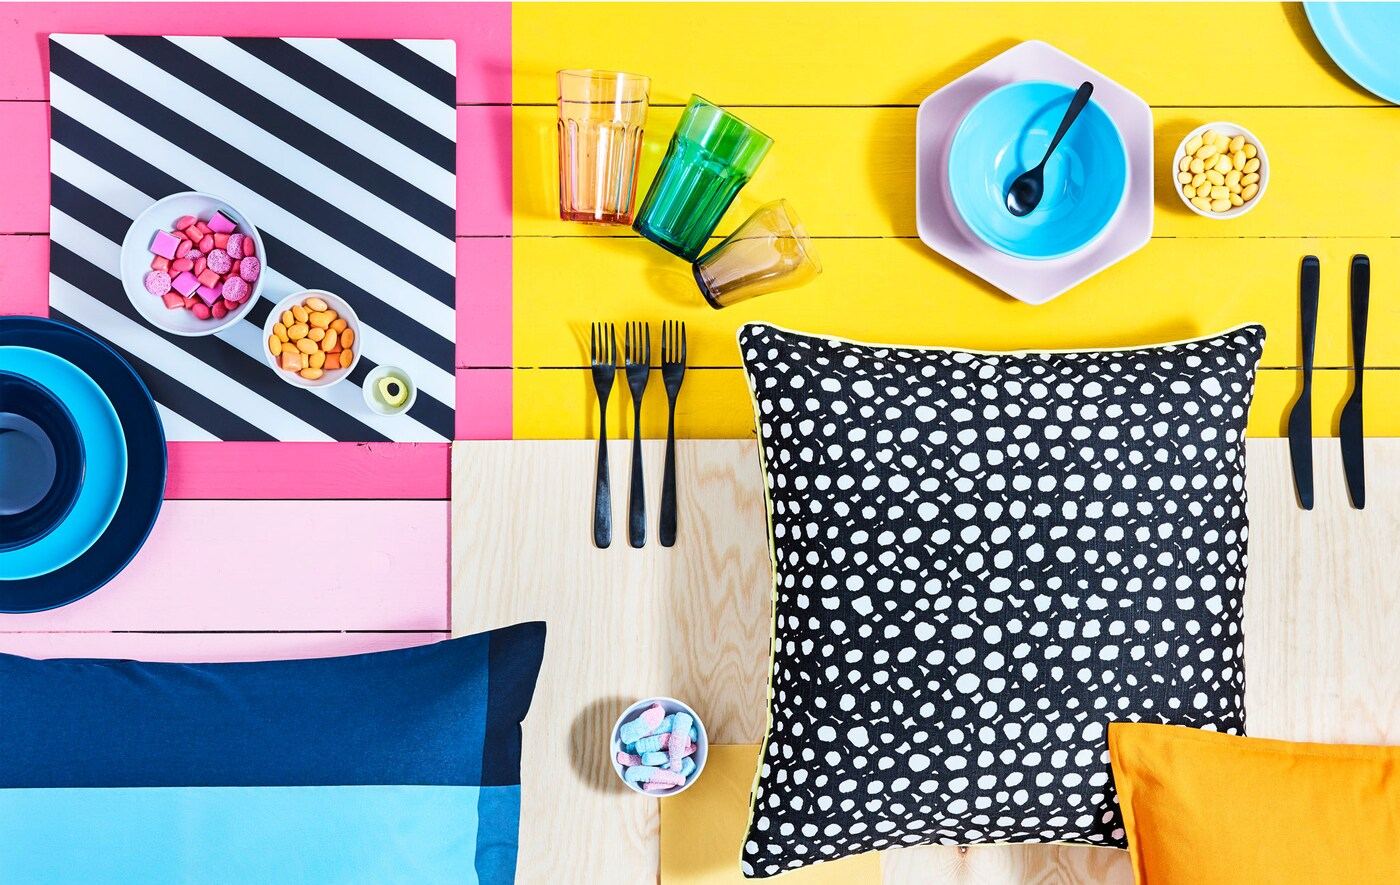 Brightly block-coloured surface with various tableware, bowls of candy and patterned cushions laid out on it.